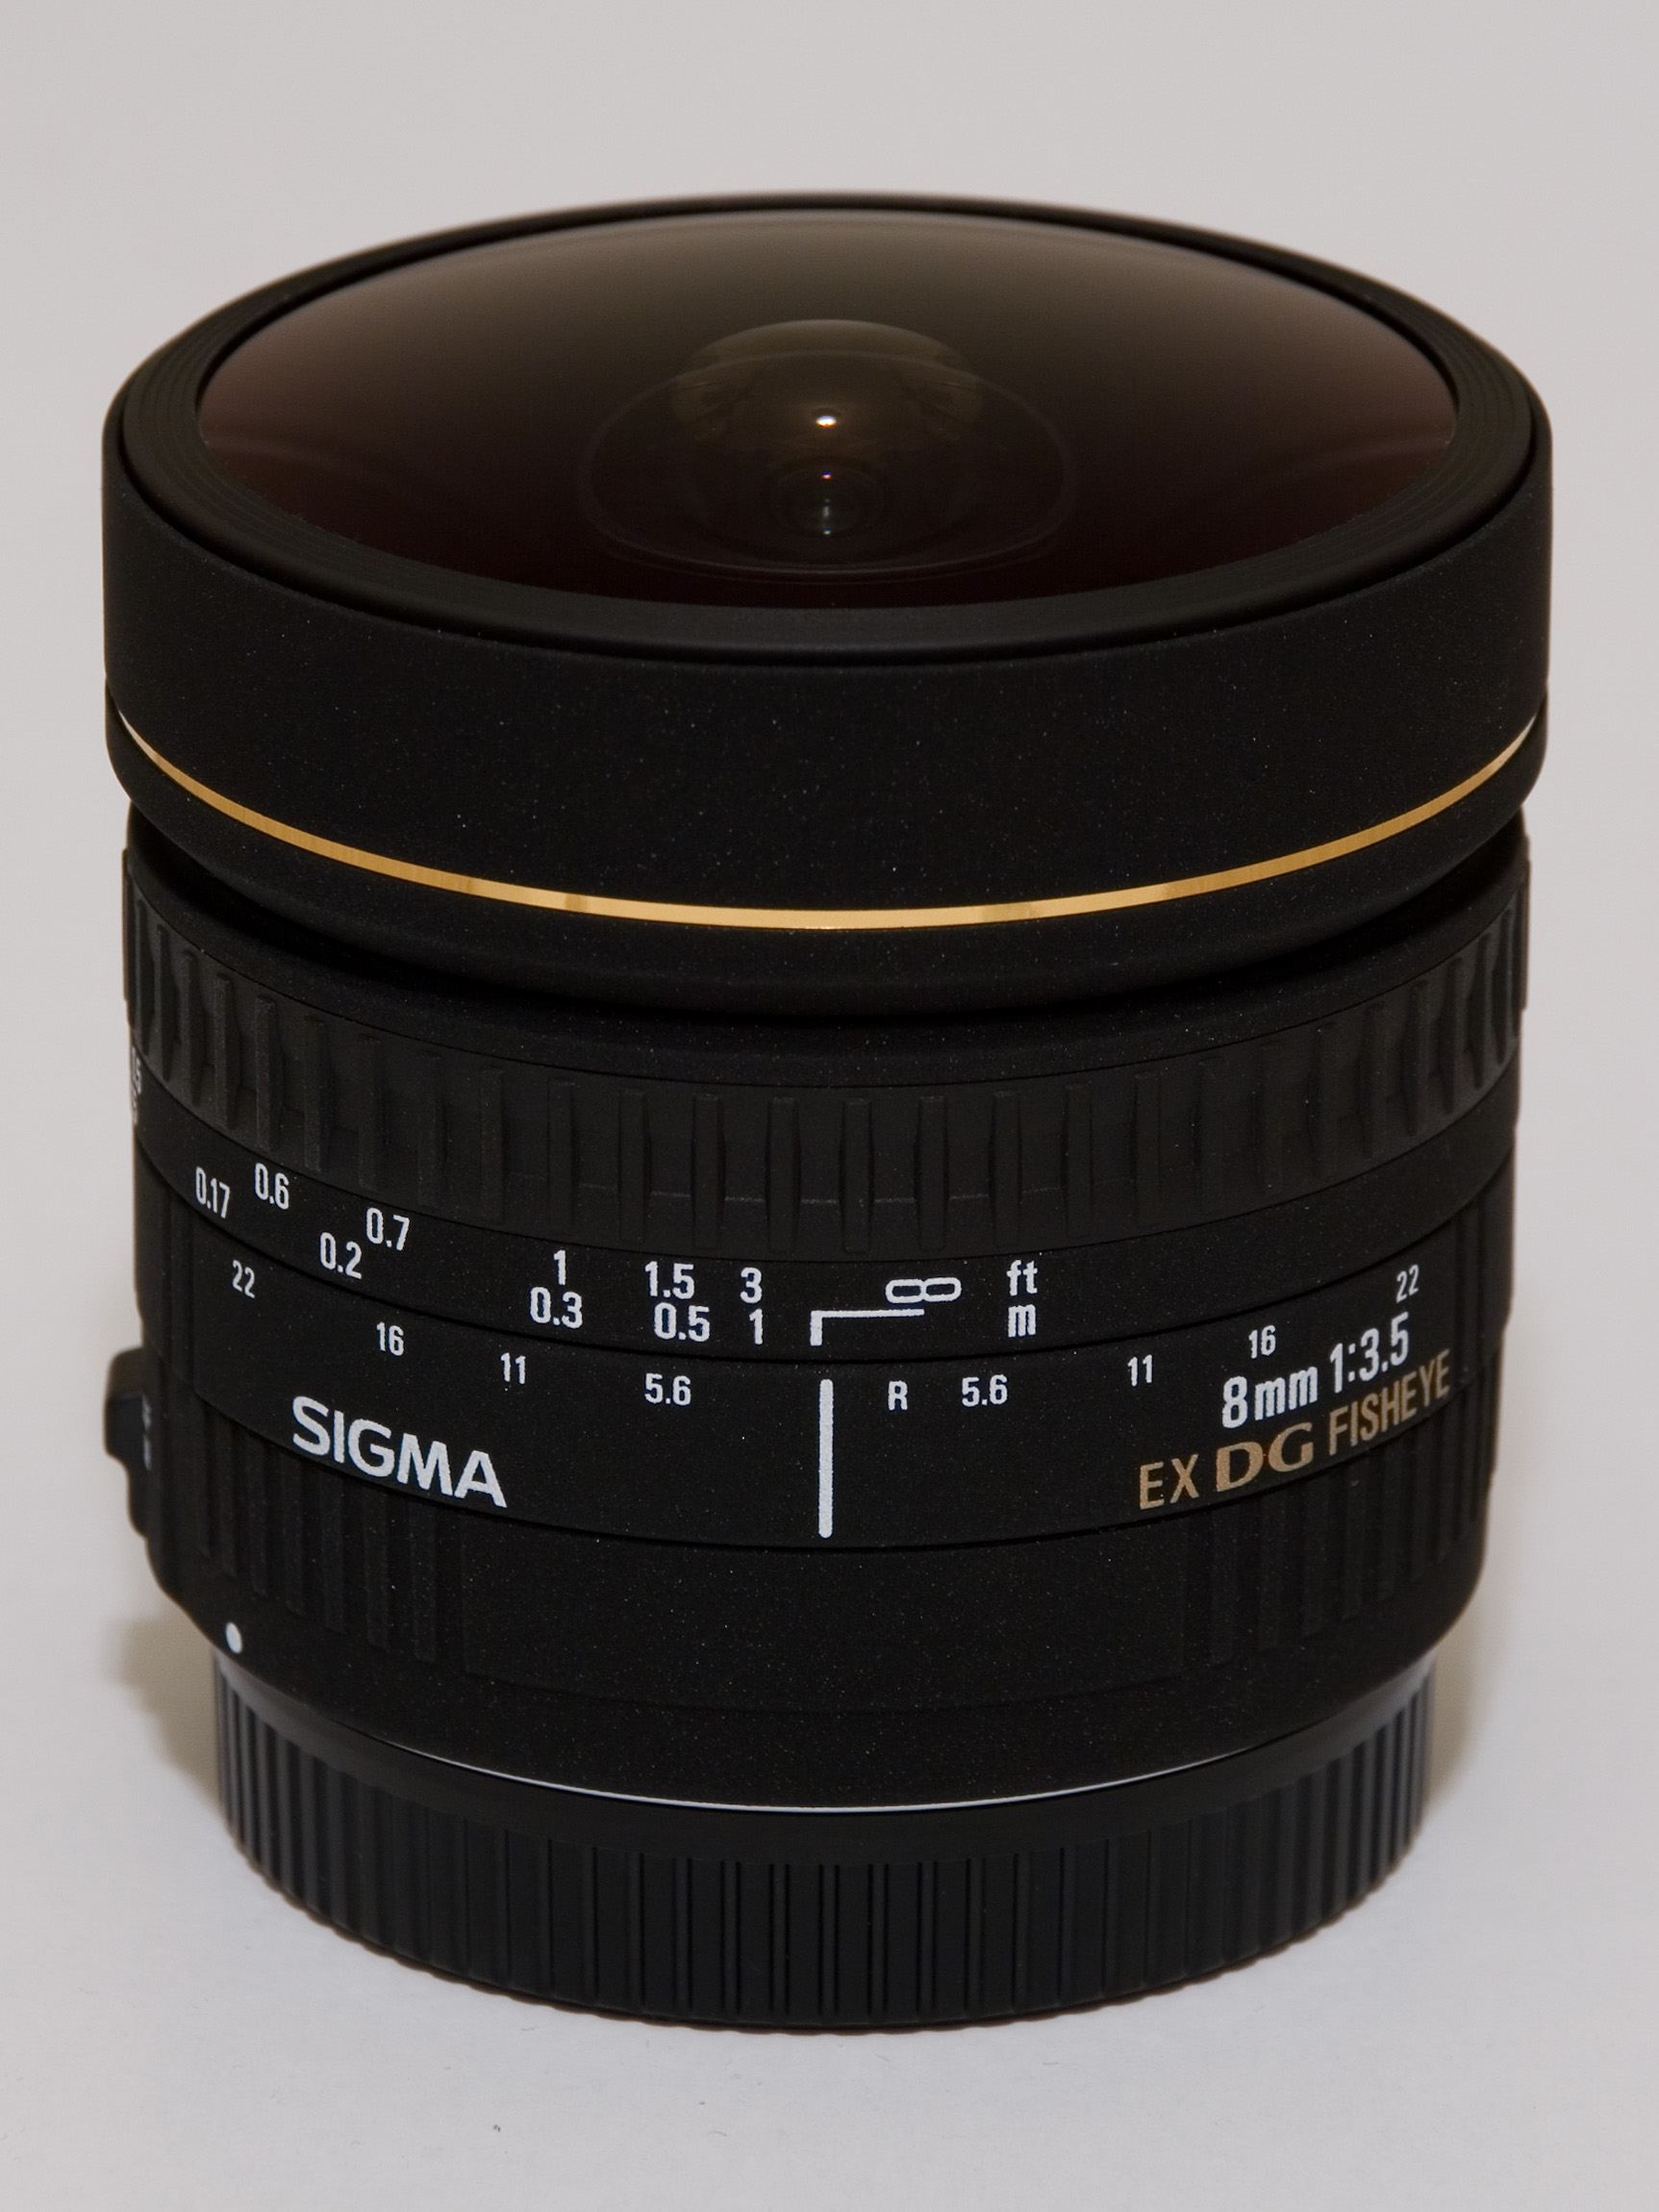 Sigma 8mm Fish Eye Lens